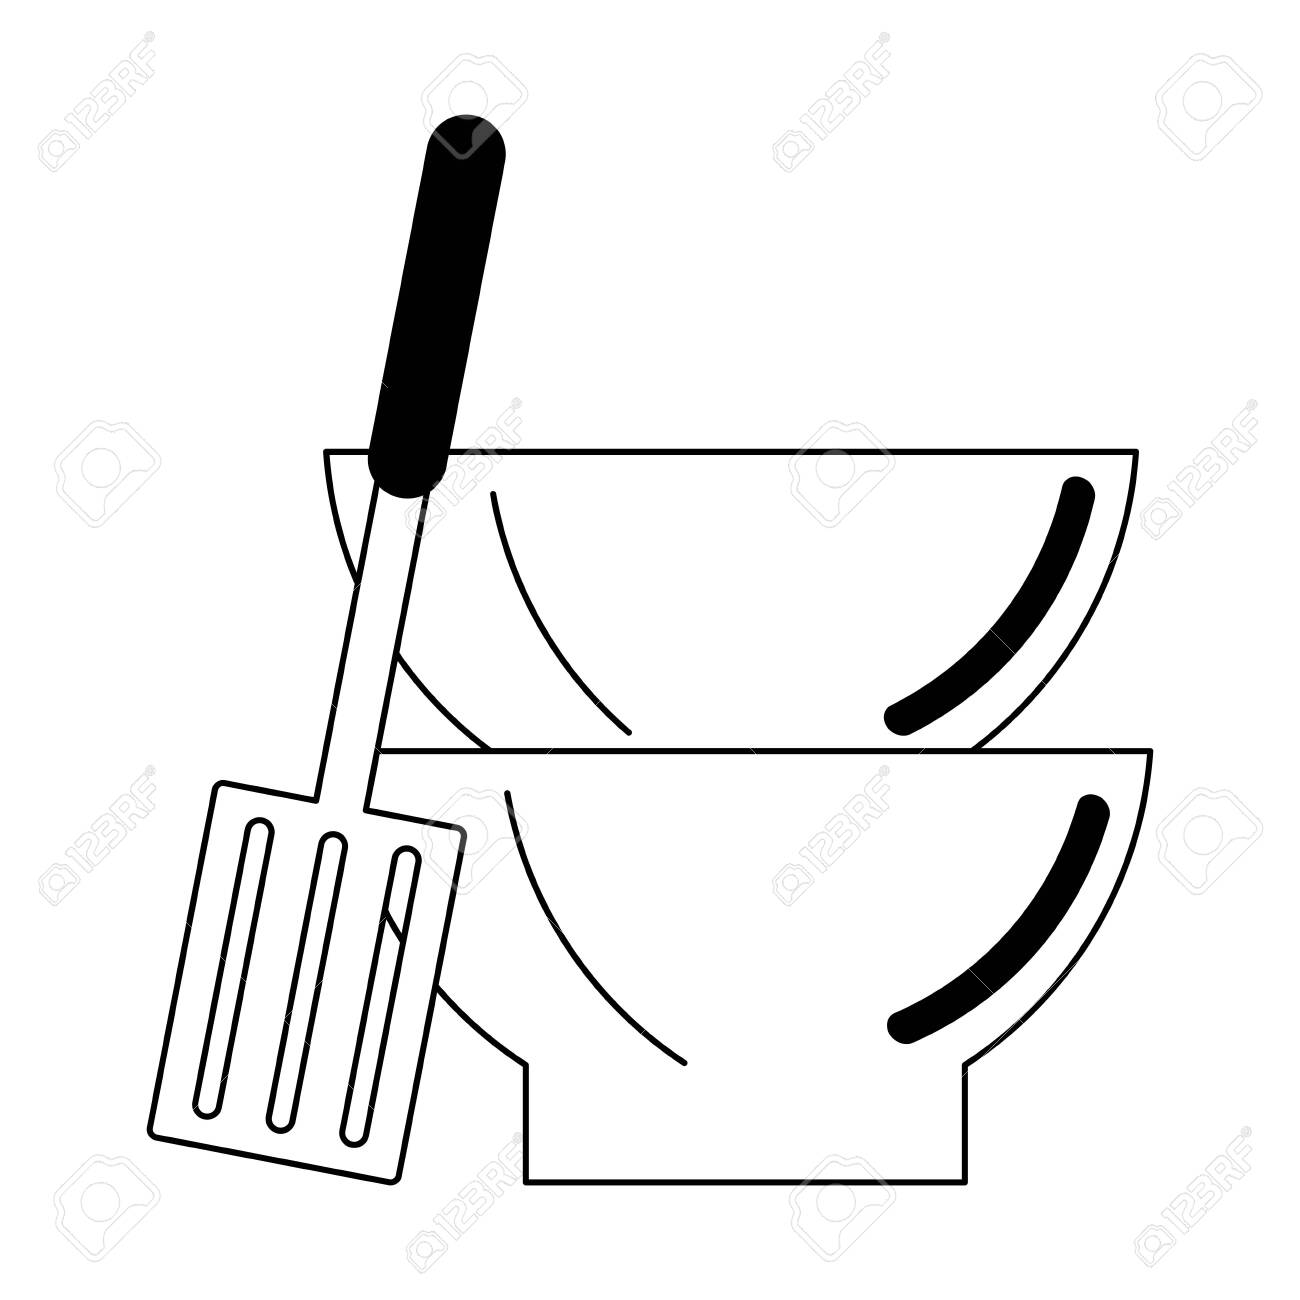 Kitchen Utensils And Supplies Cartoons Vector Illustration Graphic